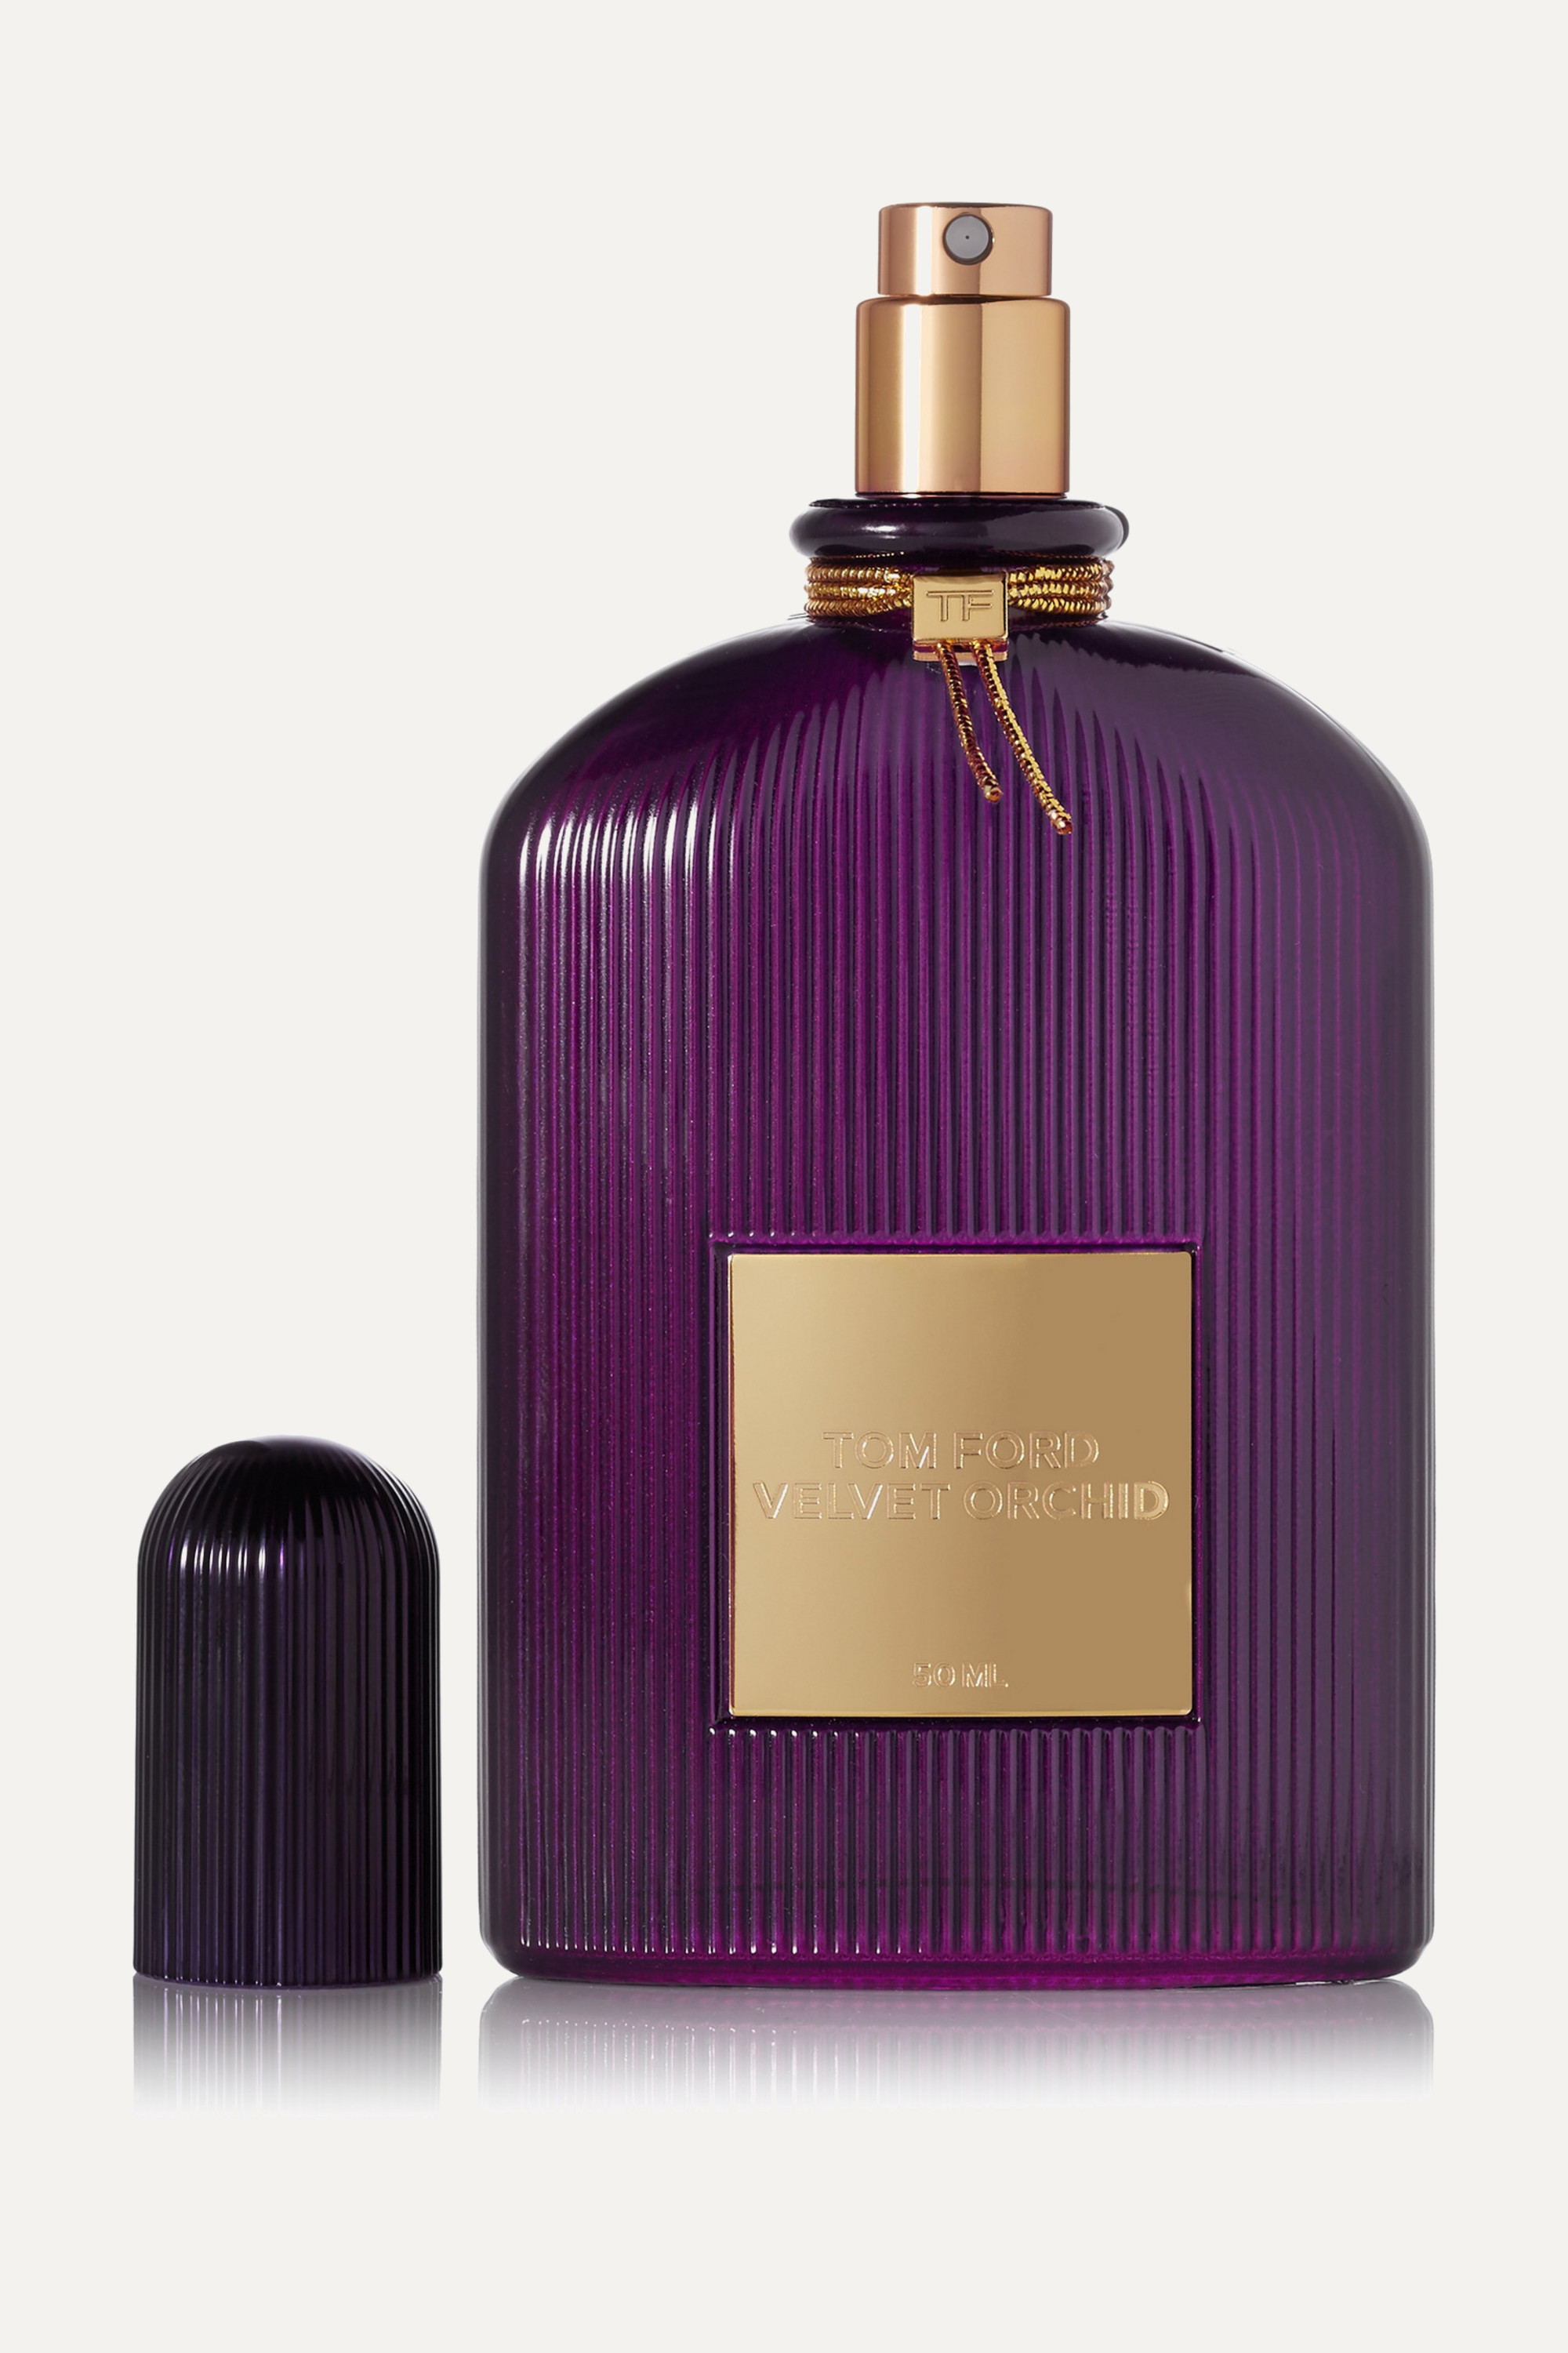 TOM FORD BEAUTY Velvet Orchid Eau de Parfum - Italian Bergamot, Rum & Honey, 50ml